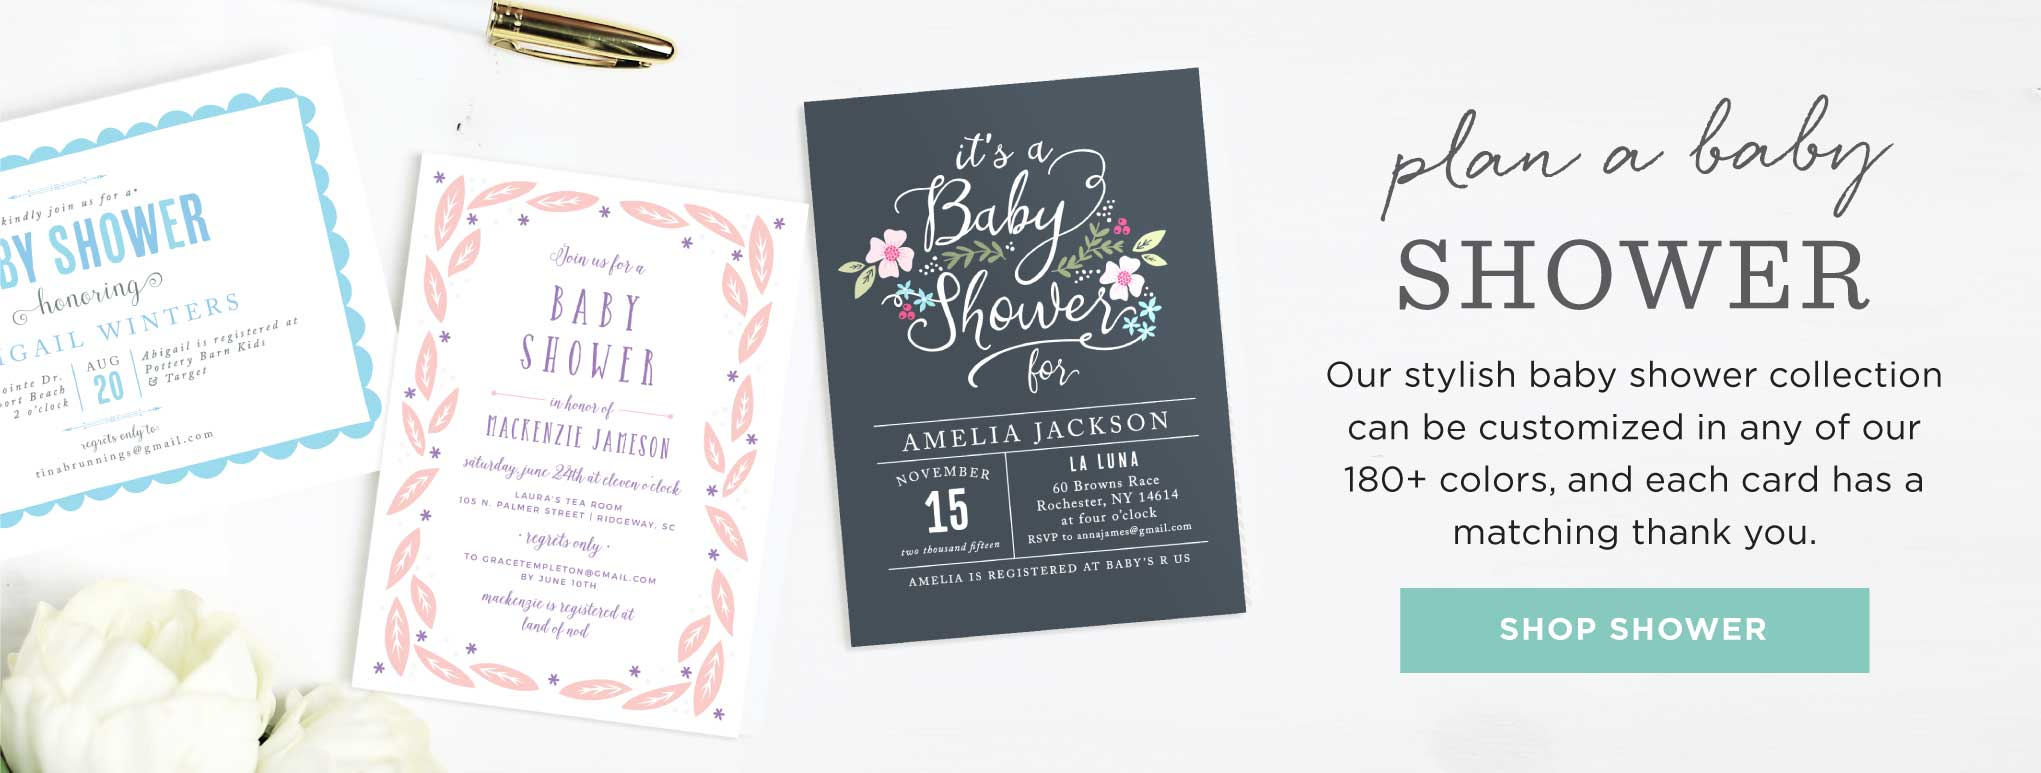 Baby Shower Cards for your Baby Boy or Baby Girl or Twin Shower